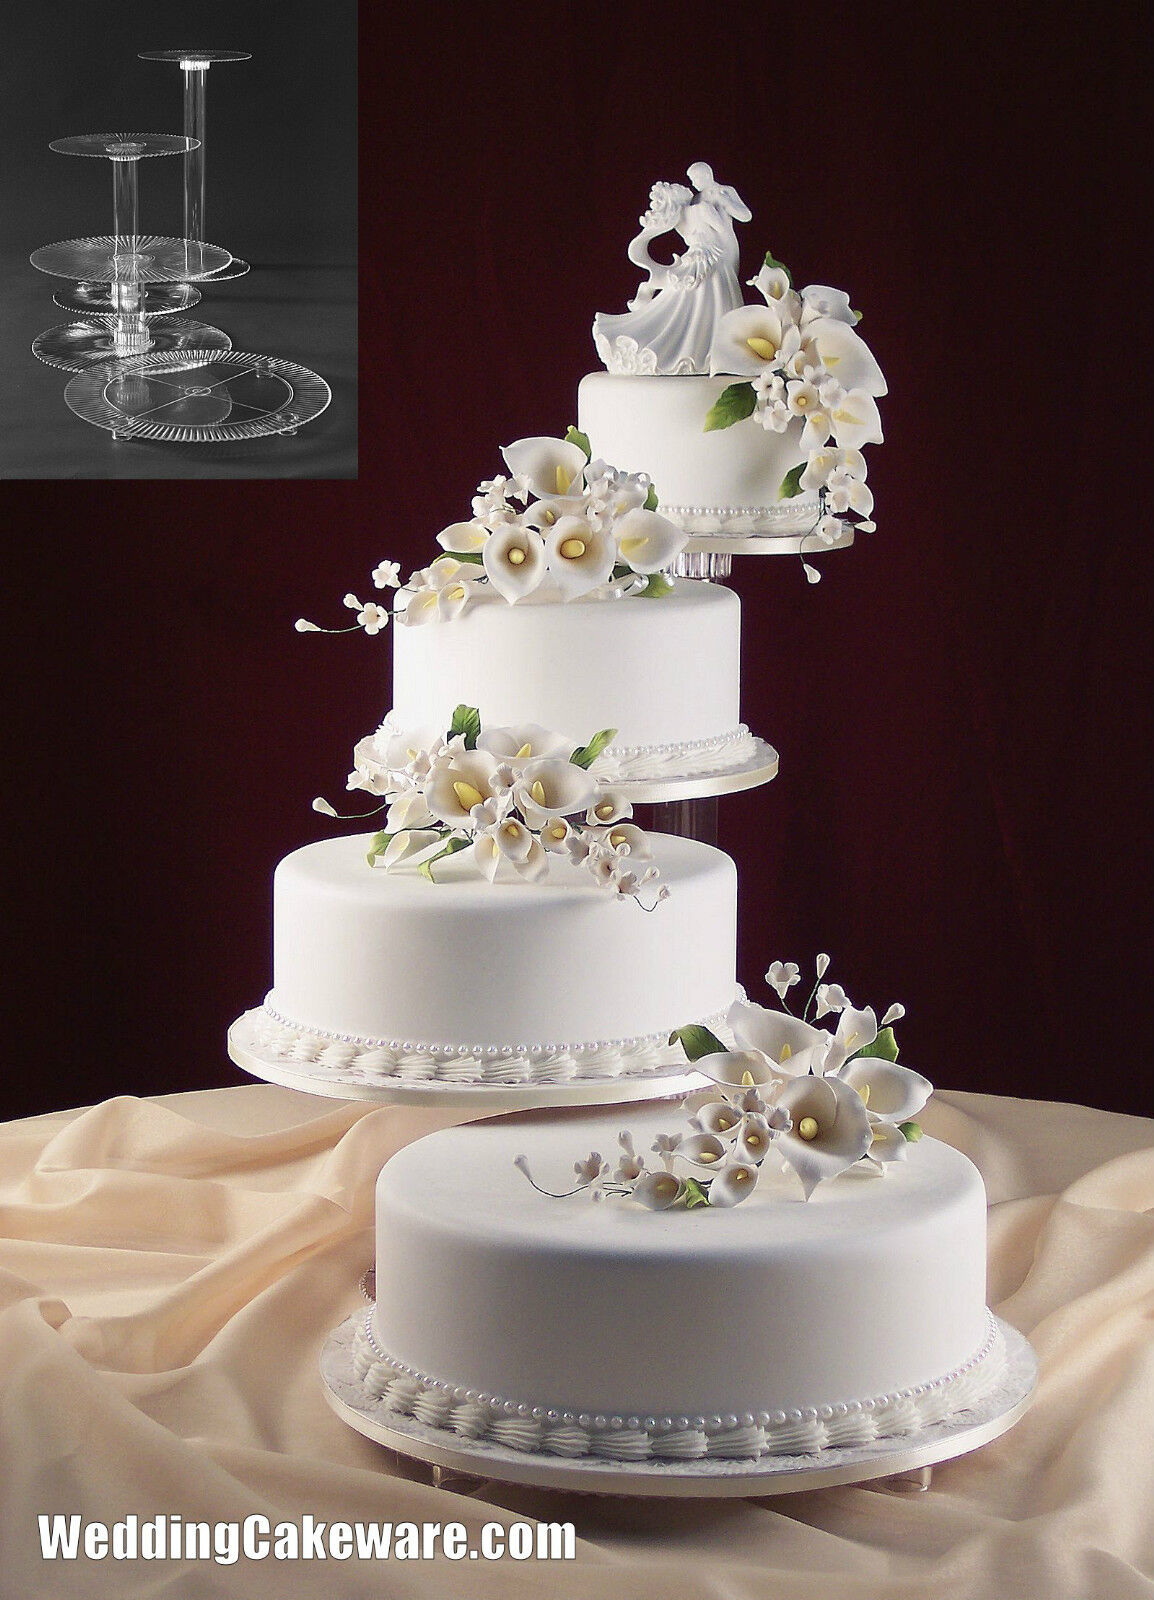 Wedding Cakes Stands 4 Tier Round Wedding Acrylic Cupcake Stand Tree Tower Cup Cake Display4TR